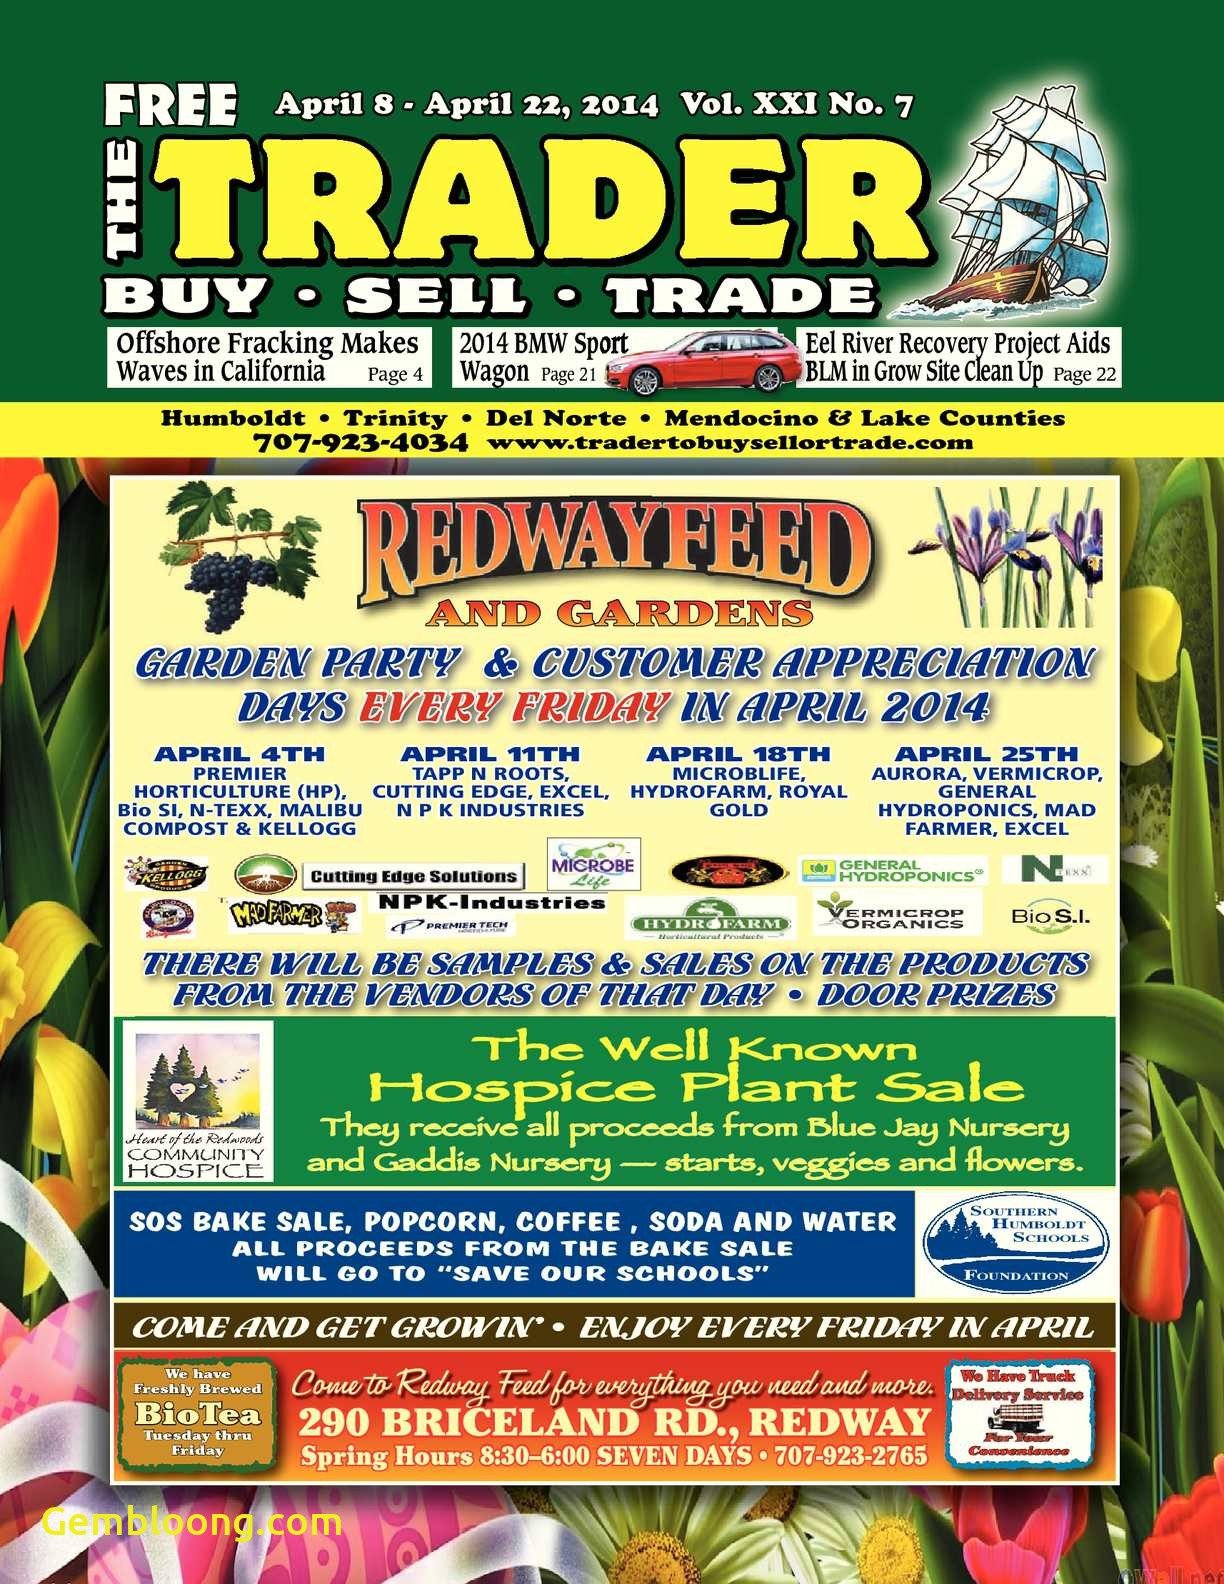 Cars for Sale by Owner Craigslist Inland Empire New Calaméo thetrader